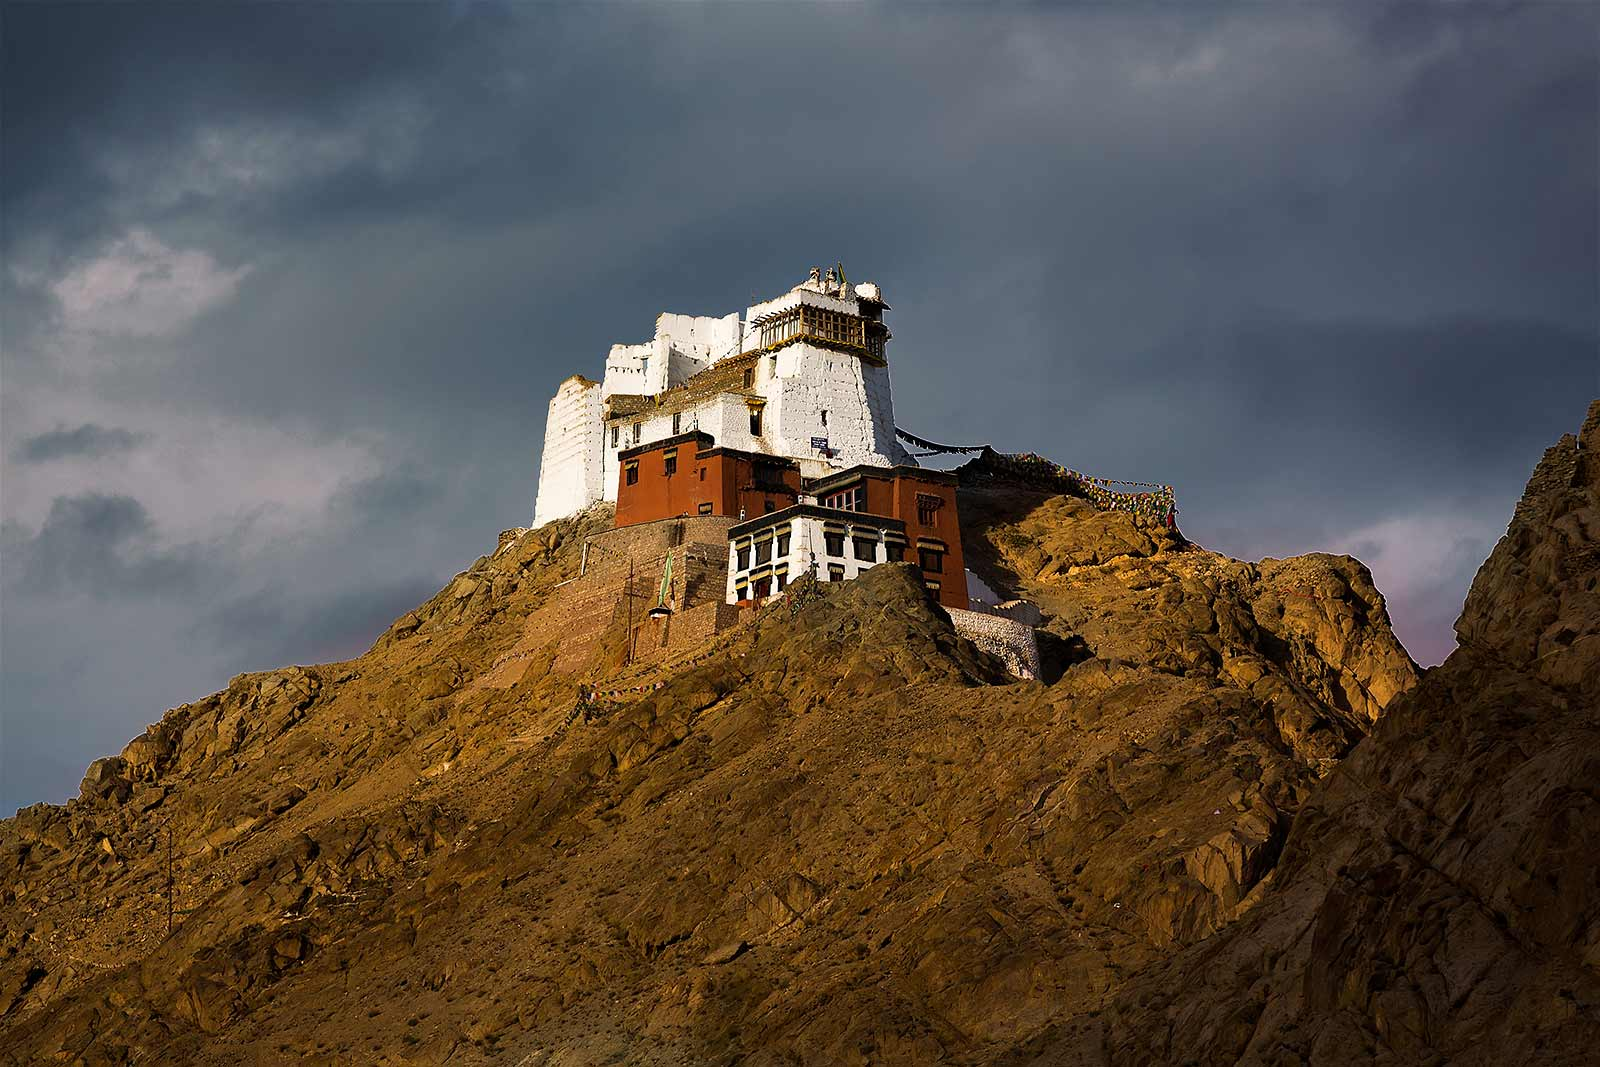 Namgyal Tsemo Gompa is the highest point in Leh with a fantastic birds eye view of the city. One can reach the monastery with a short car ride or by trekking up right from the city centre.